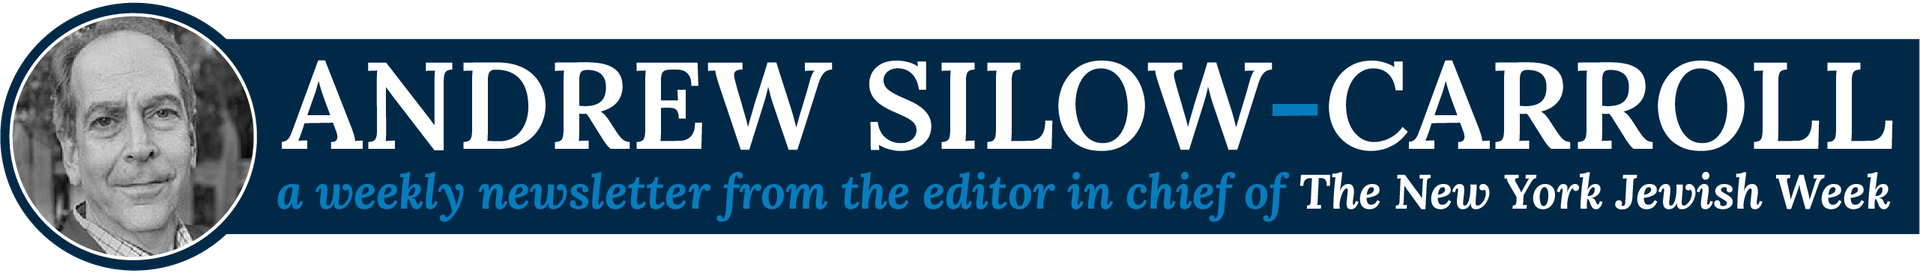 Andrew Silow-Carroll - a weekly newsletter